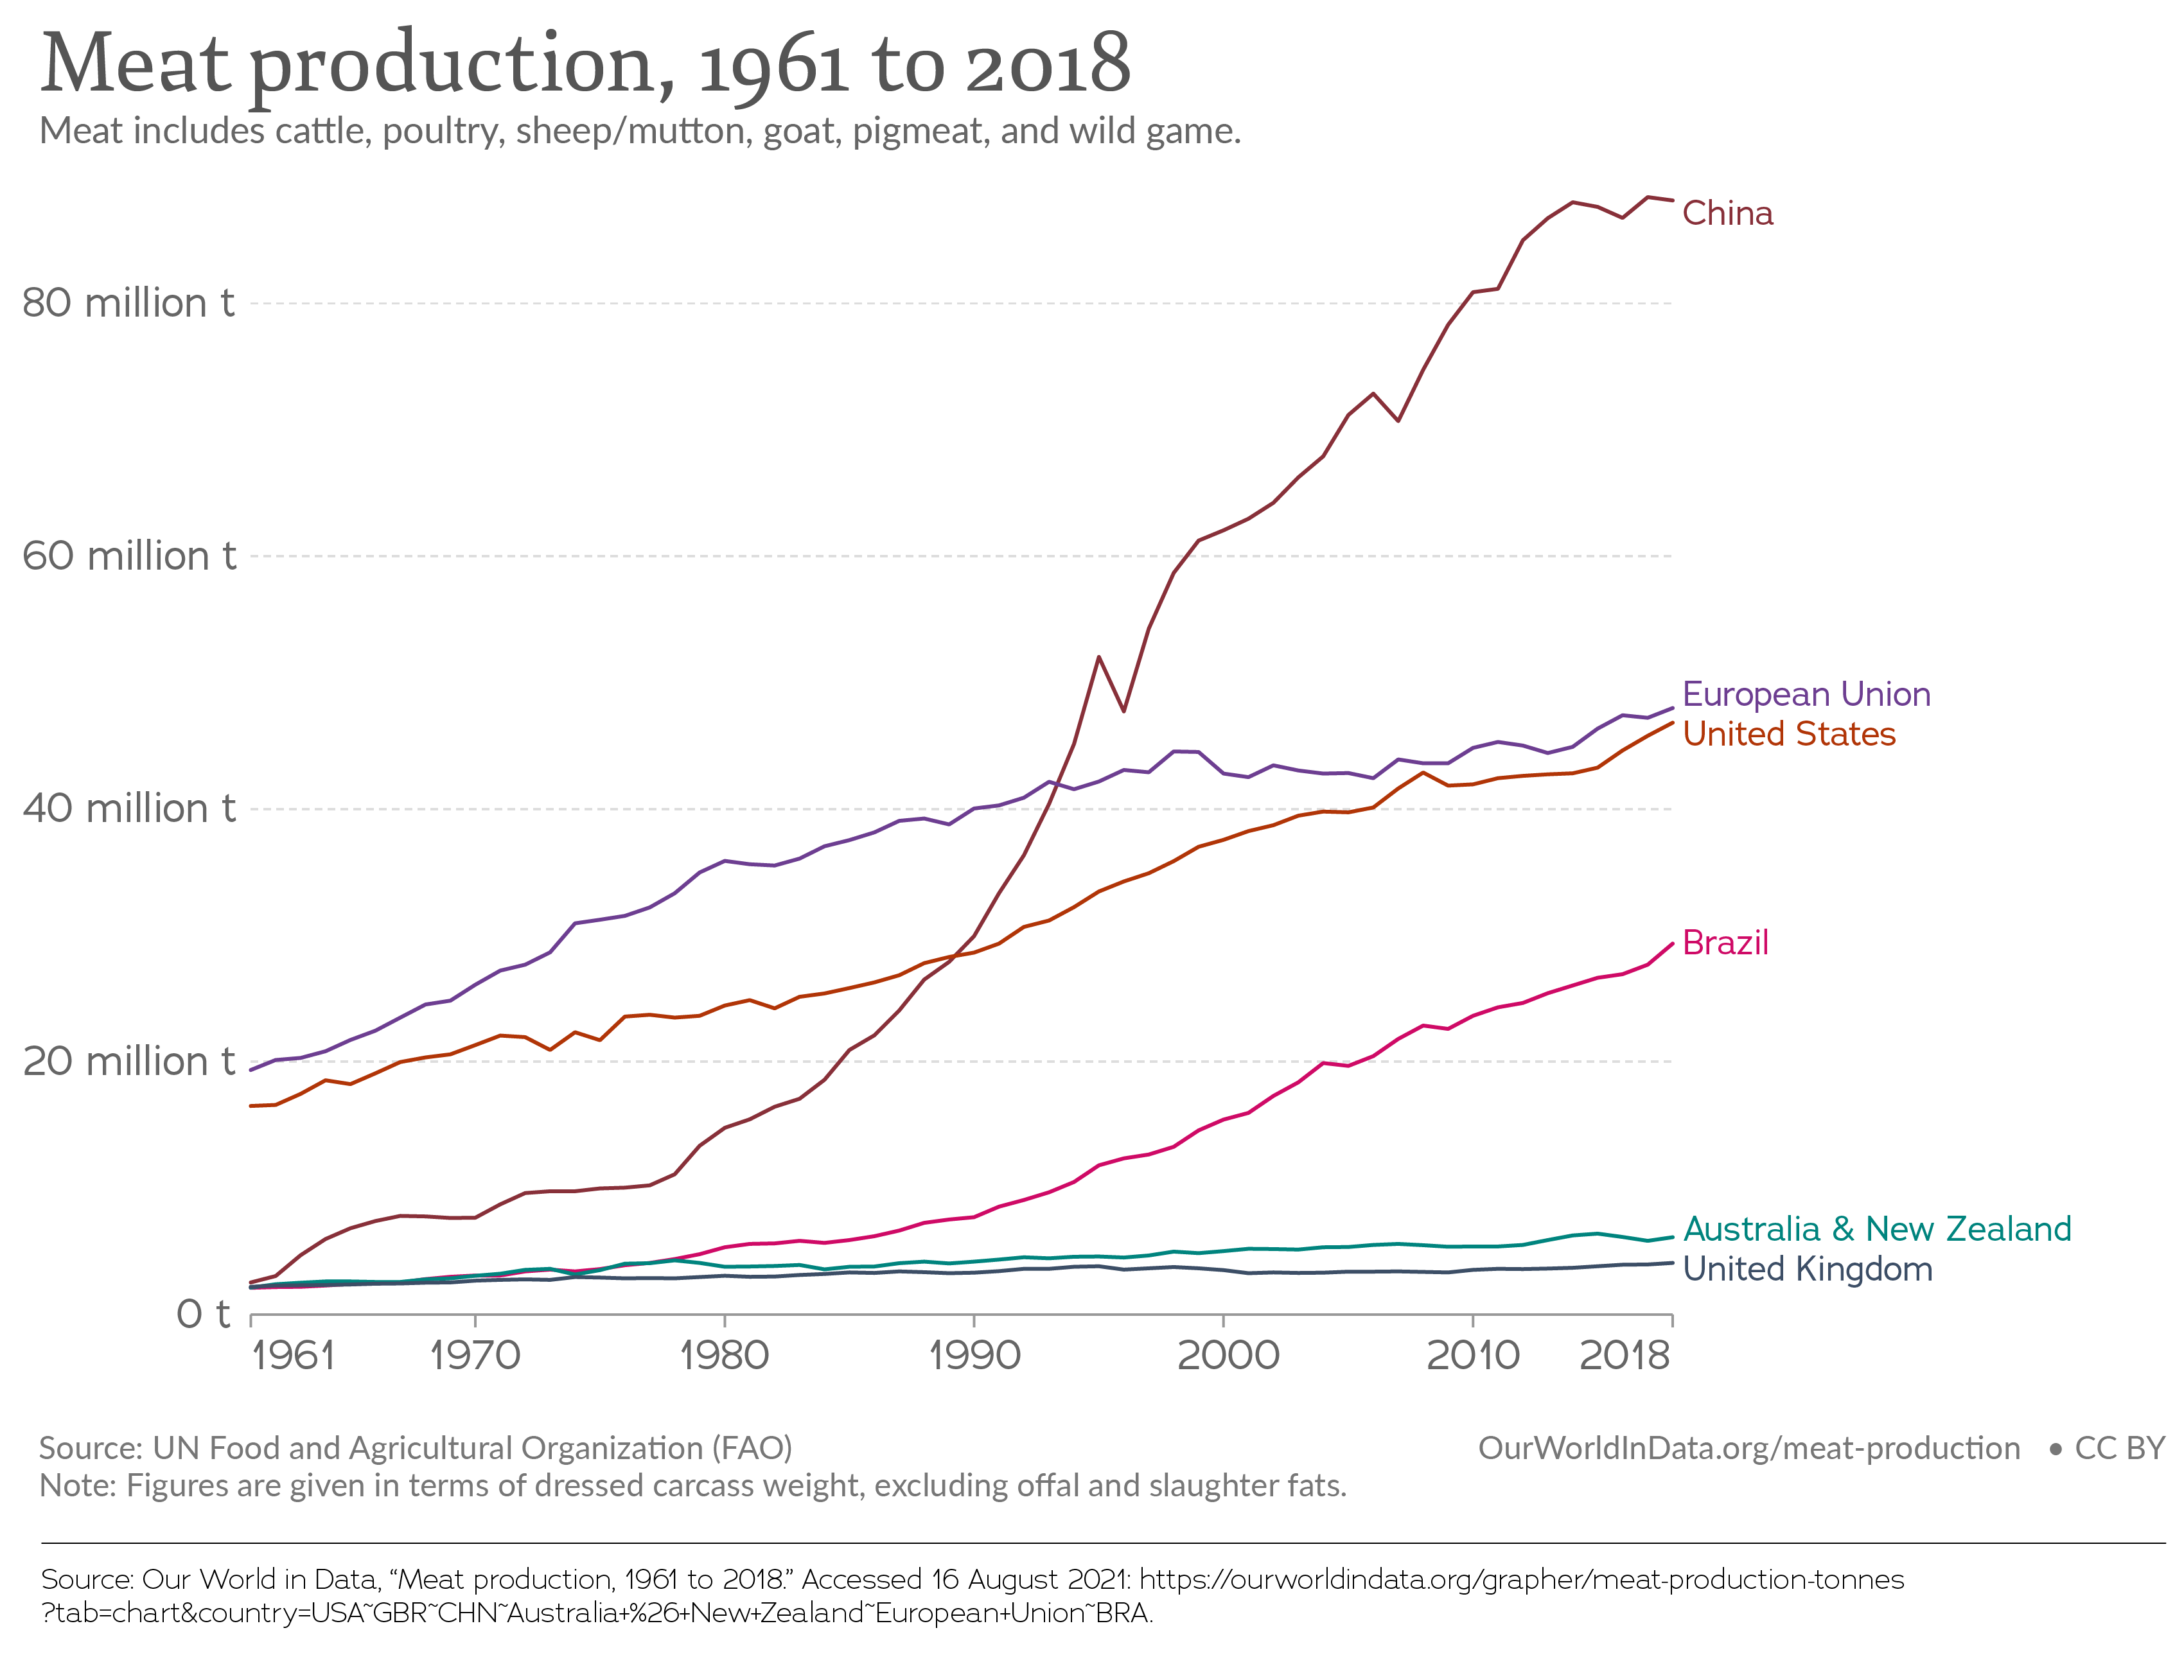 Meat production, 1961 to 2018